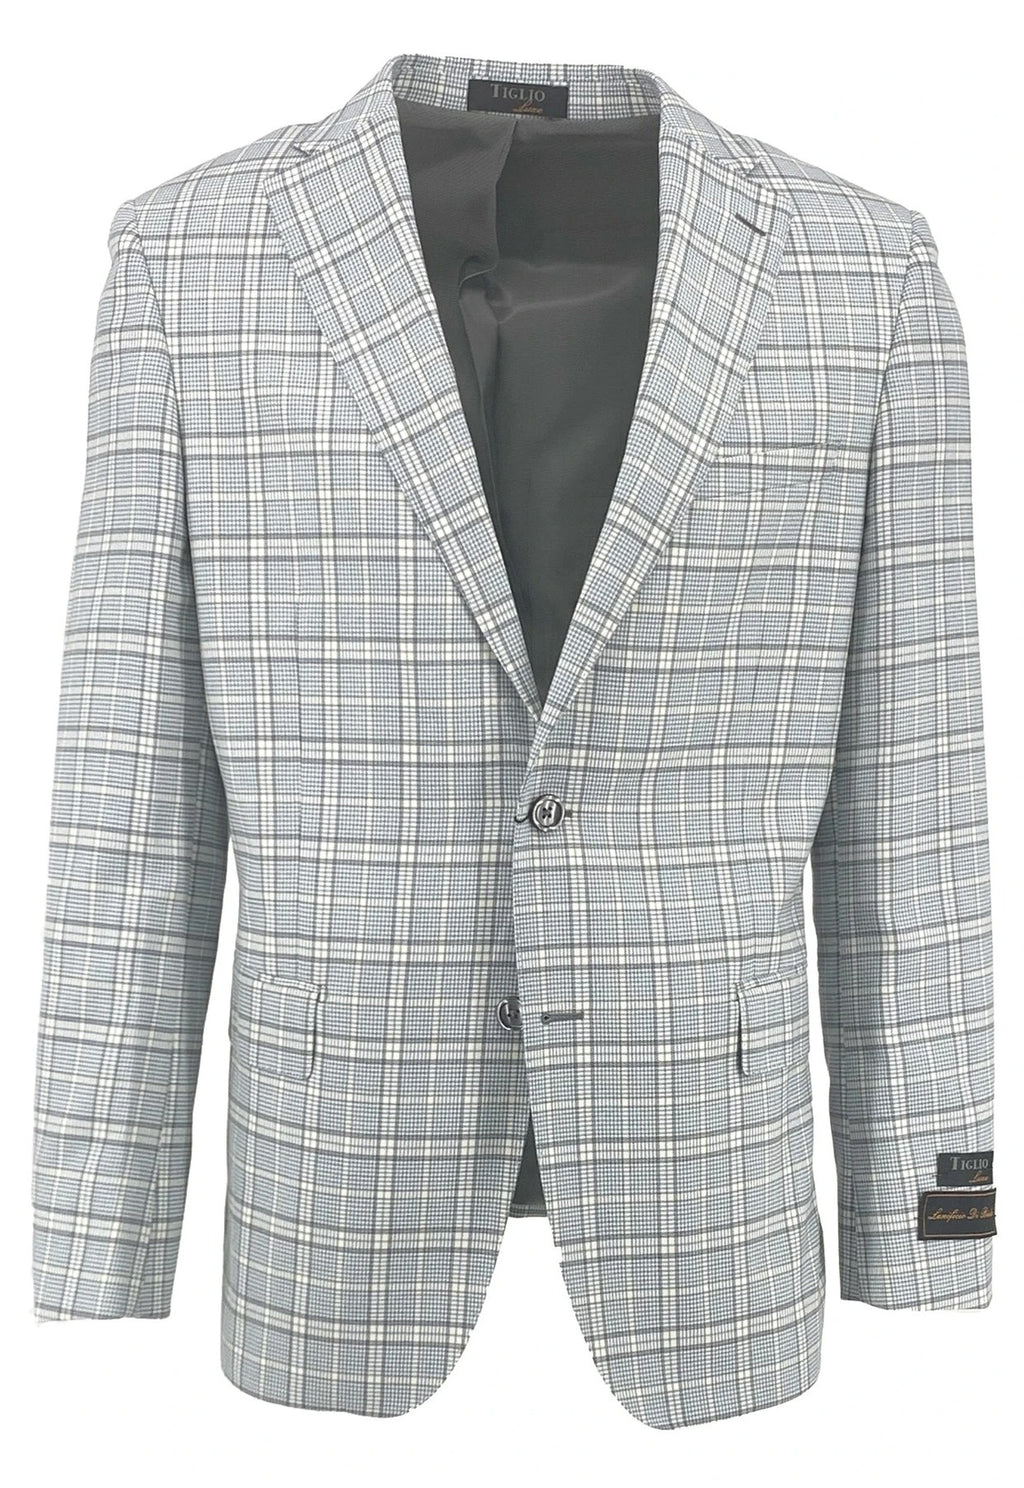 Dolcetto Light Blue Houndstooth with White Windowpane Modern Fit, Pure Wool Jacket by Tiglio Luxe CT552161